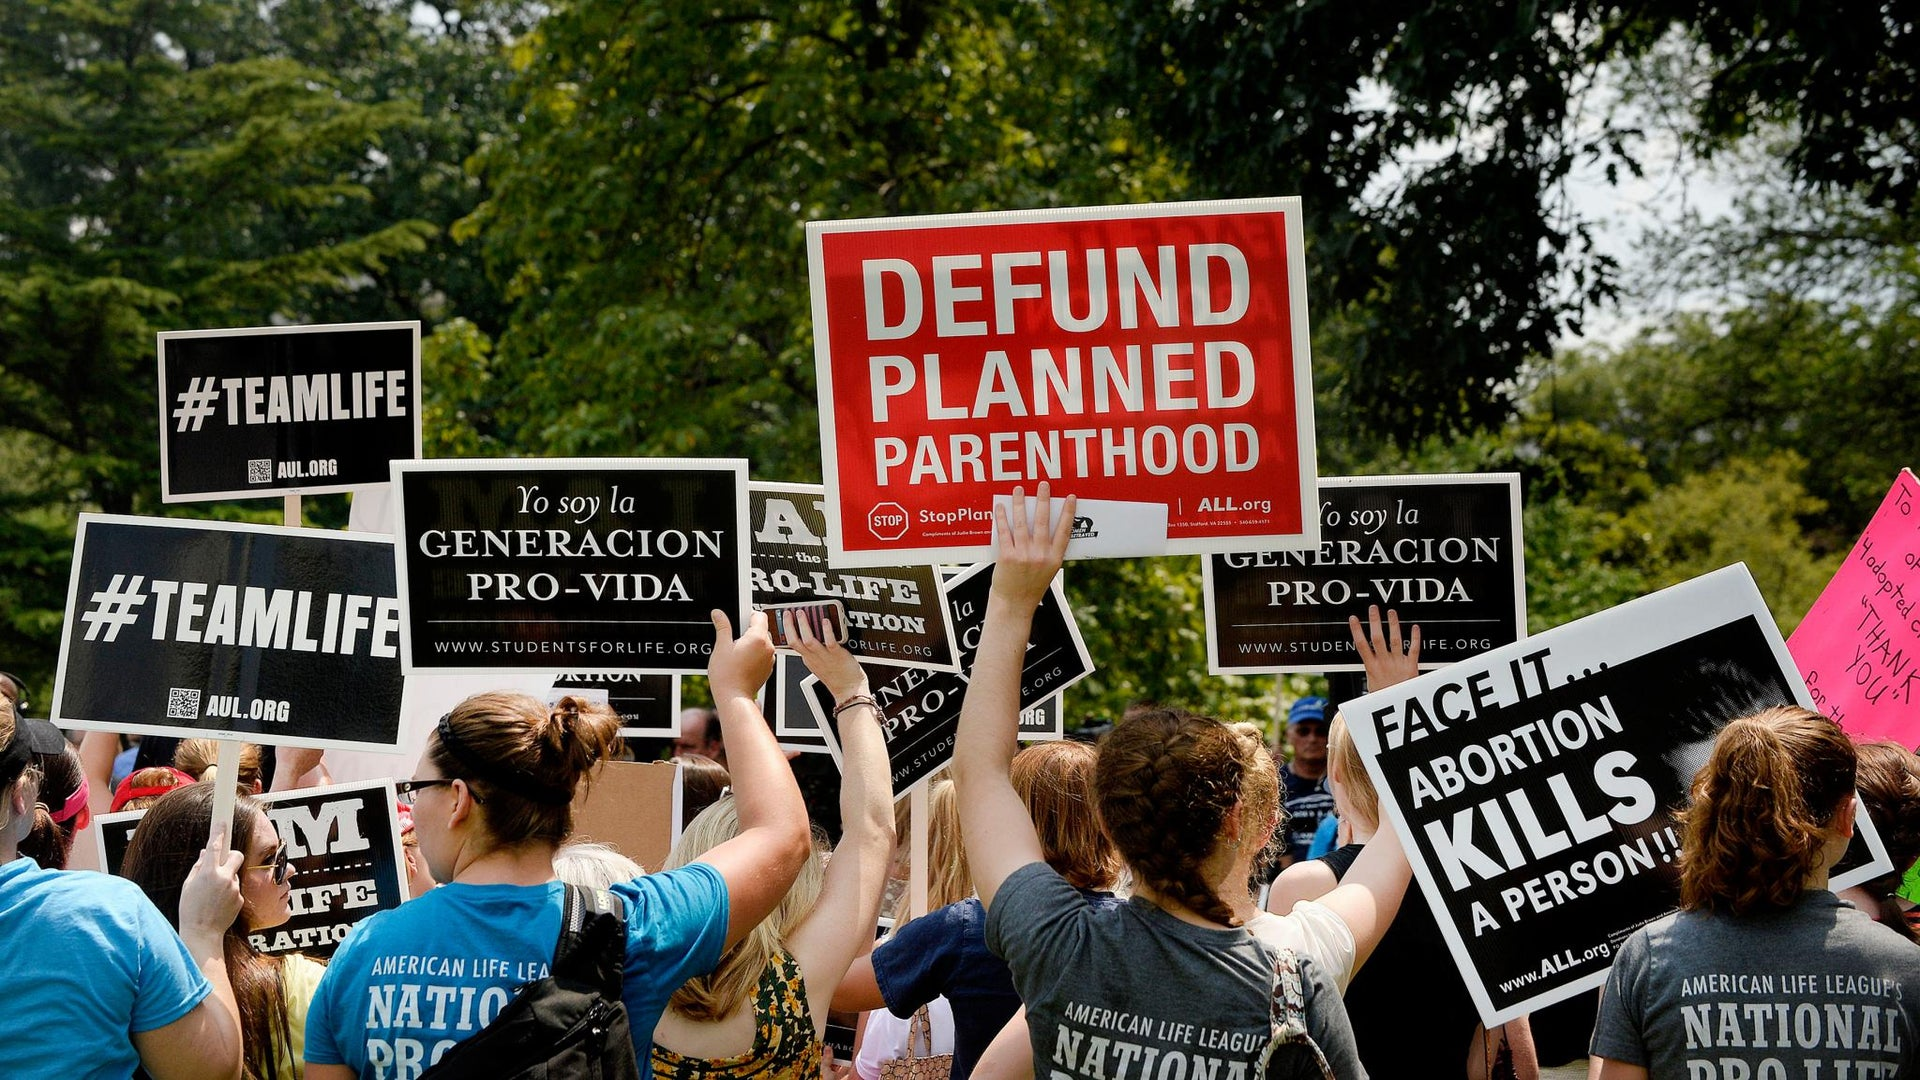 ESSENCE Poll: Do You Support or Reject the Senate's Decision to Stop Funding Planned Parenthood?